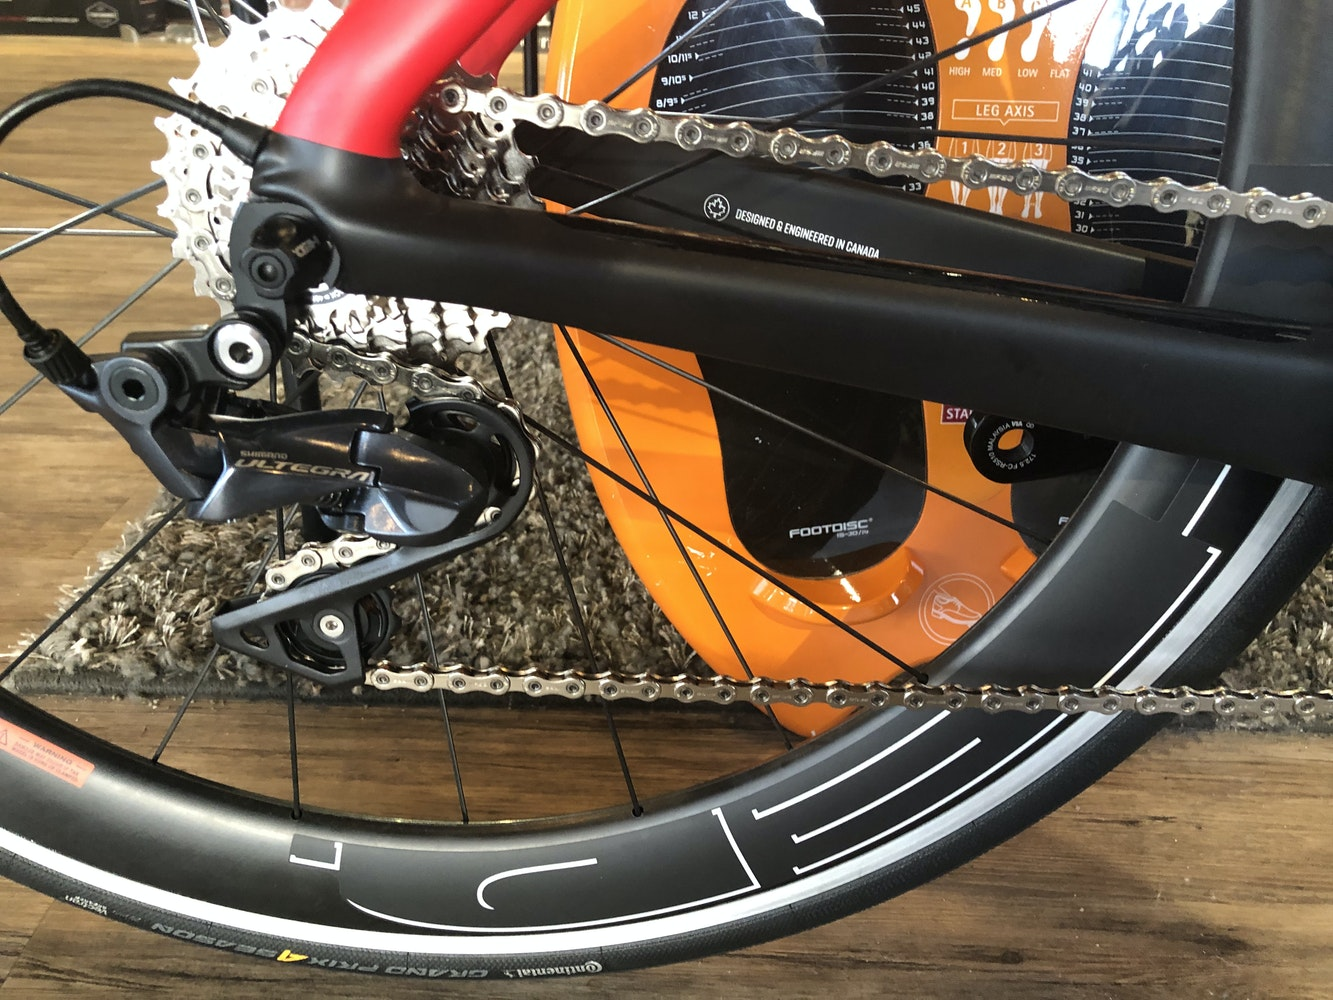 2844a789f8a Argon 18 2019 E-117 Ultegra/ 105 Mix with upgraded HED JET 6 wheel set! |  Triathlon & Time Trial Bikes for sale in Eagan